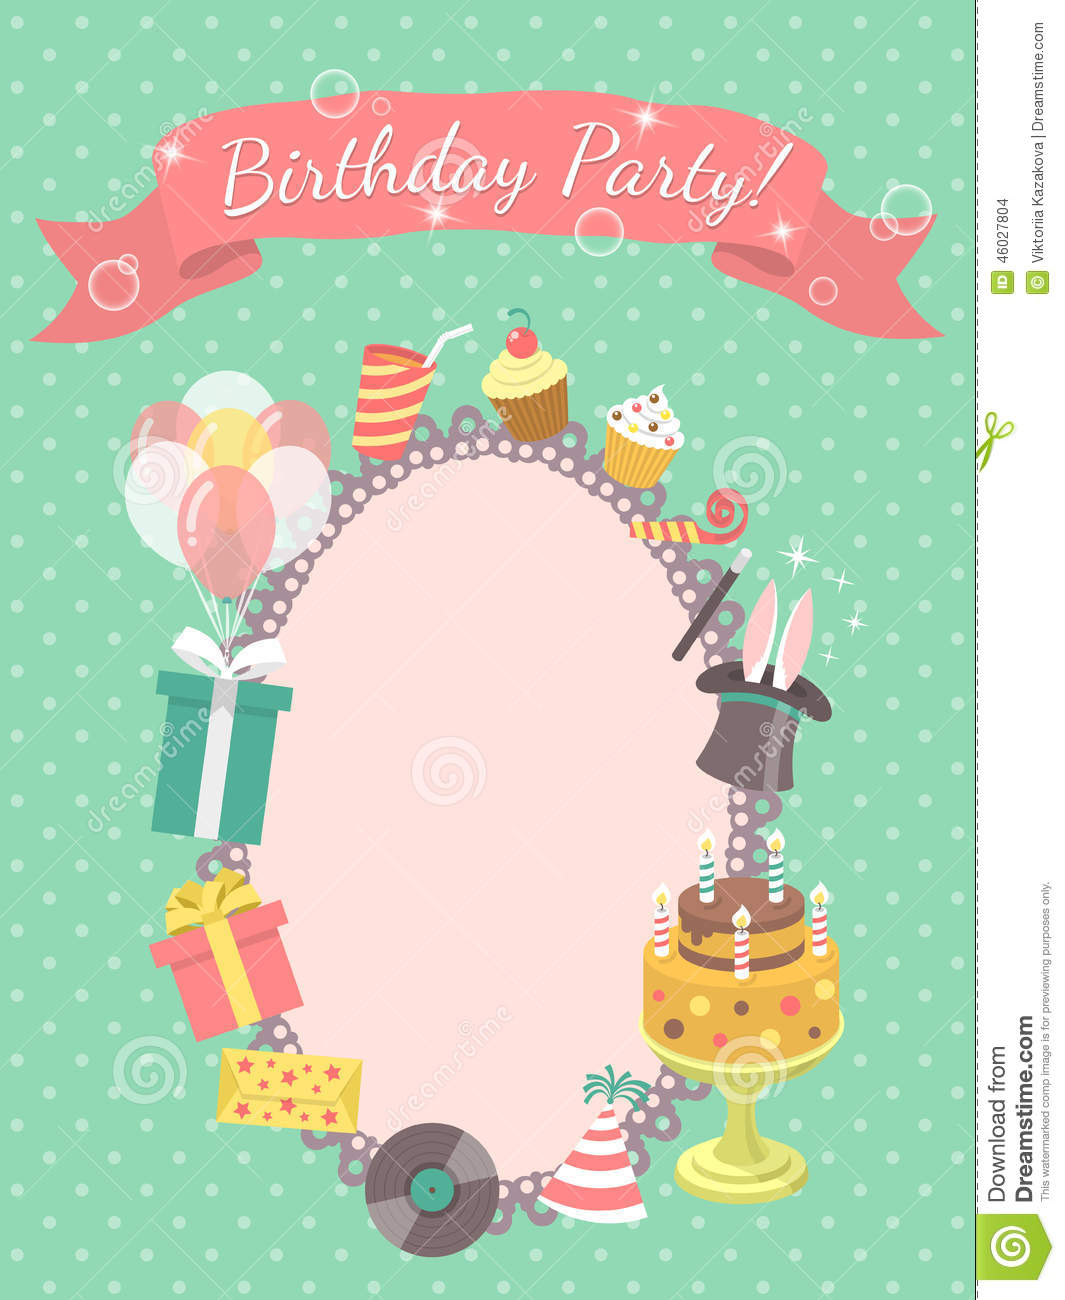 Bildergebnis für Birthday Party Invitation Card